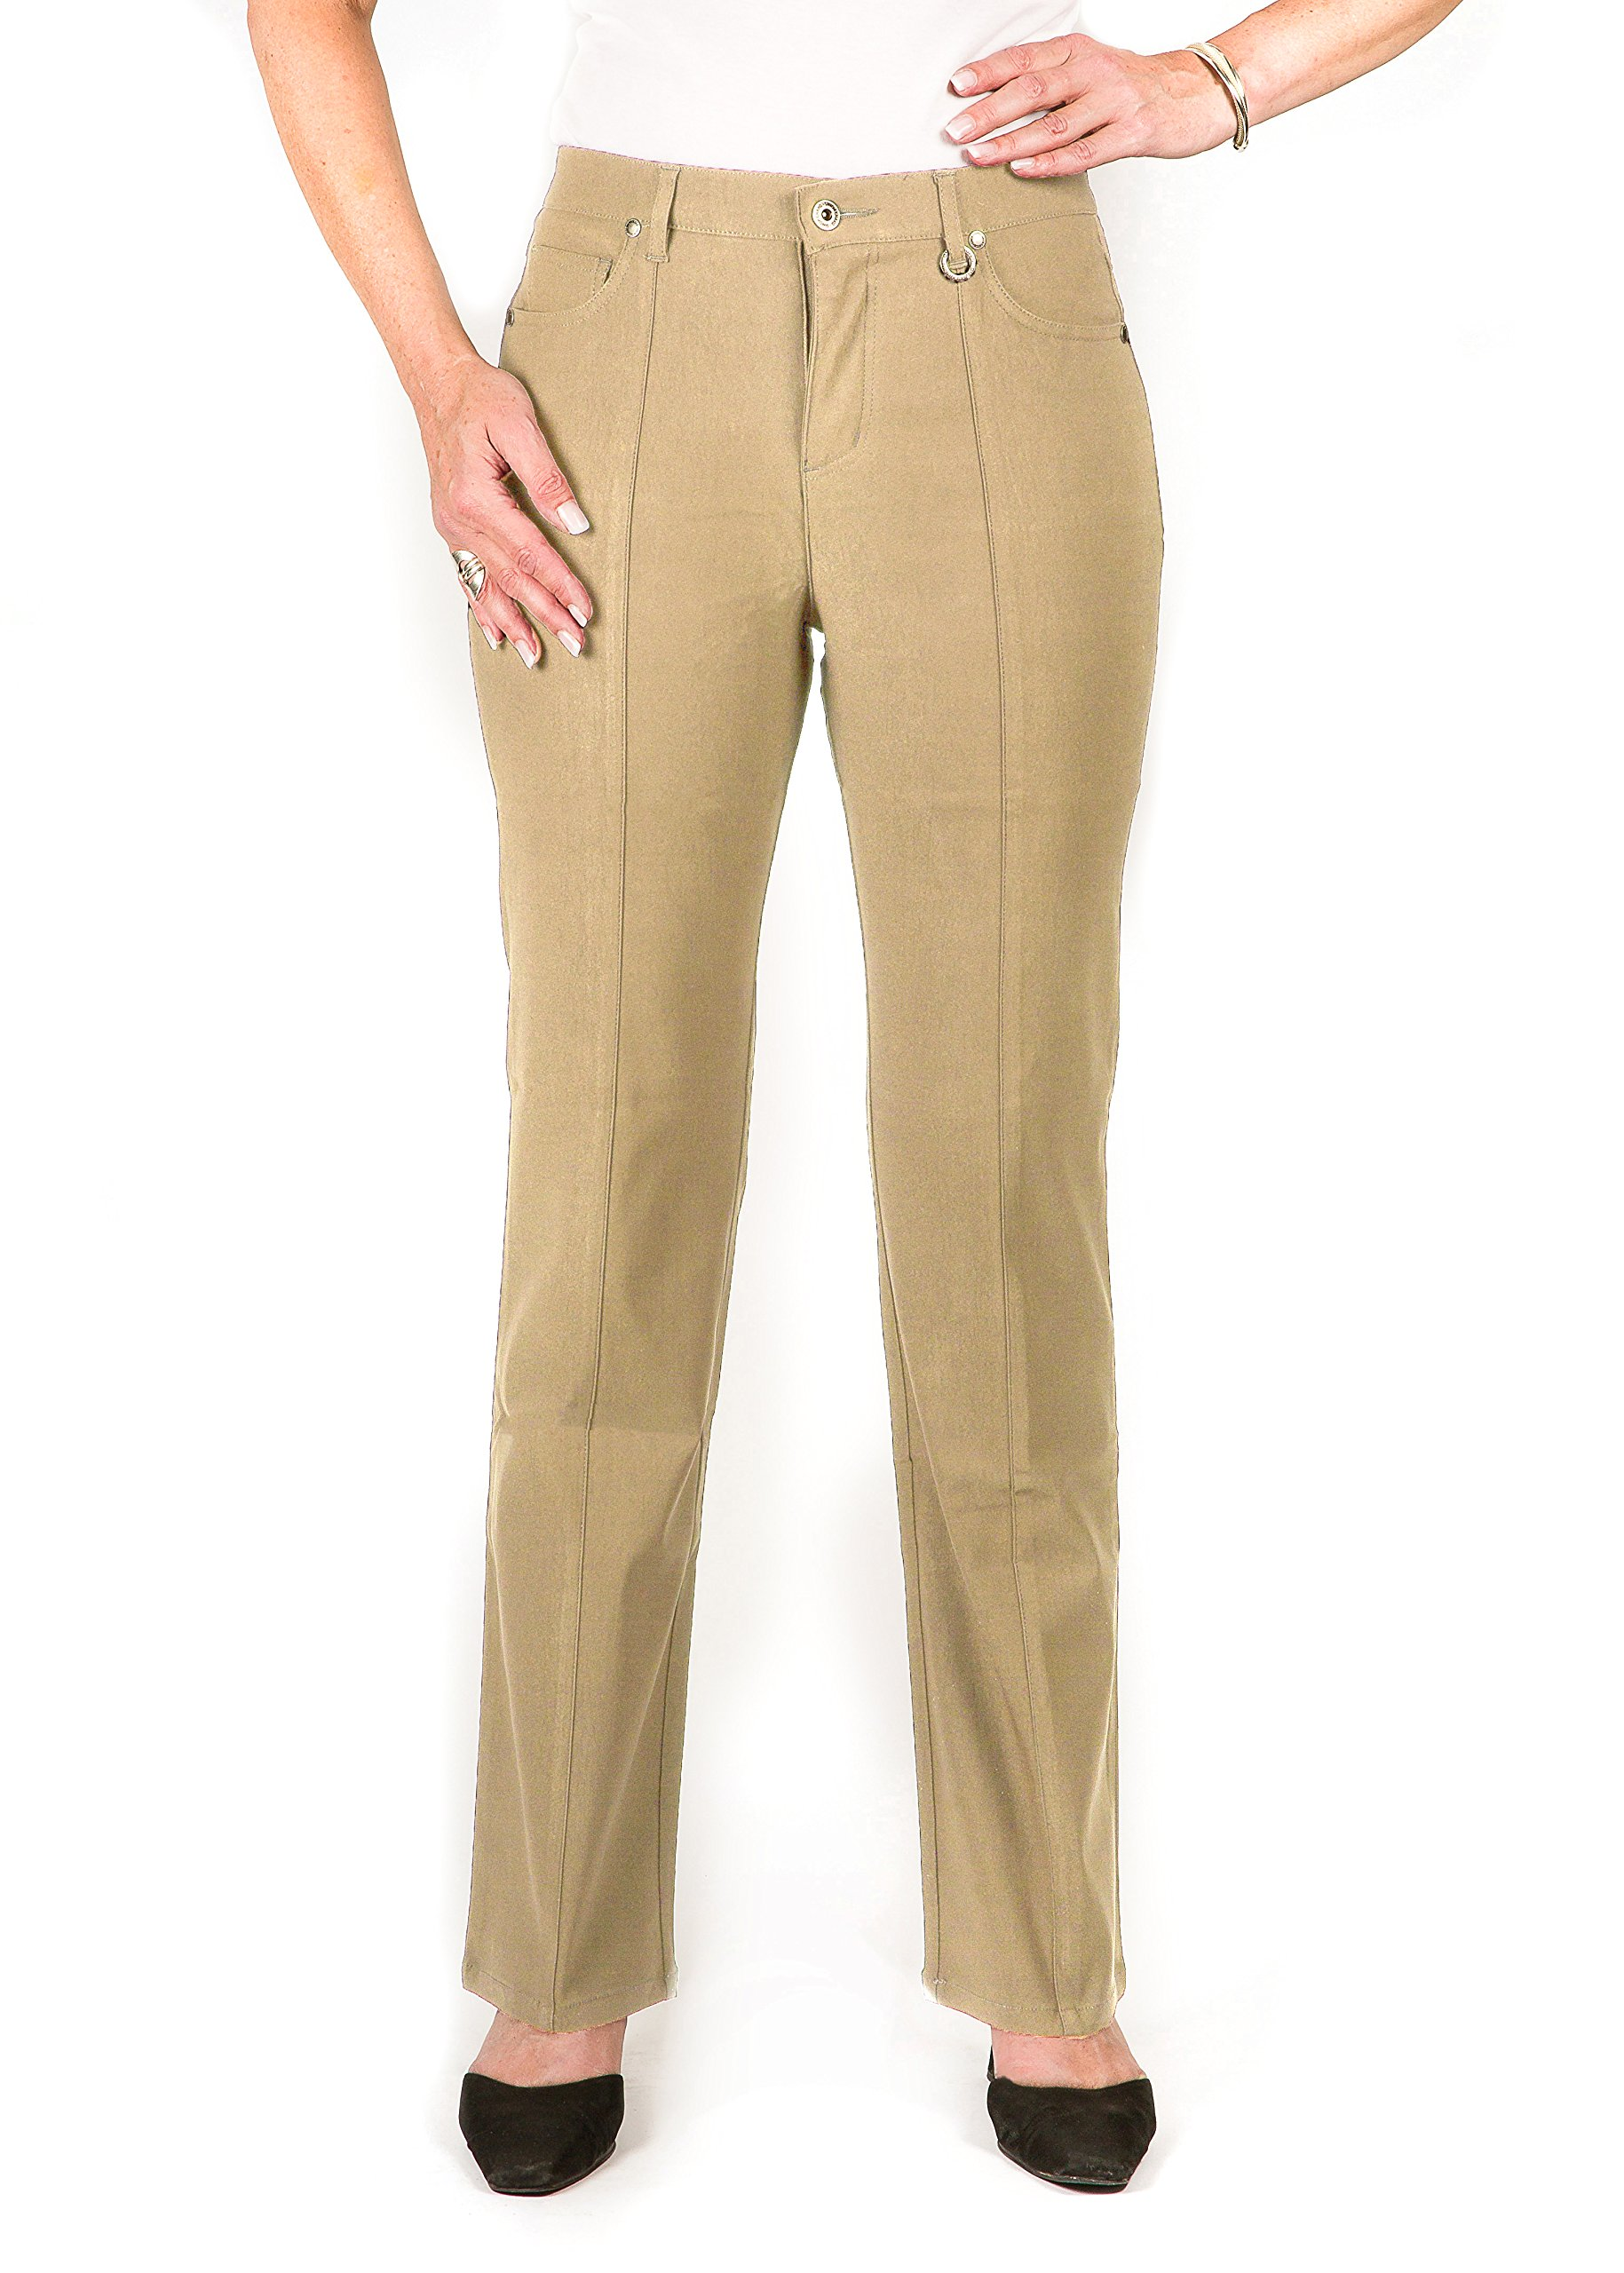 Plus Size Simon Chang 5 Pocket Straight Leg Microtwill Pant Style# 3-5302X (18 Plus, Stone) by Simon Chang